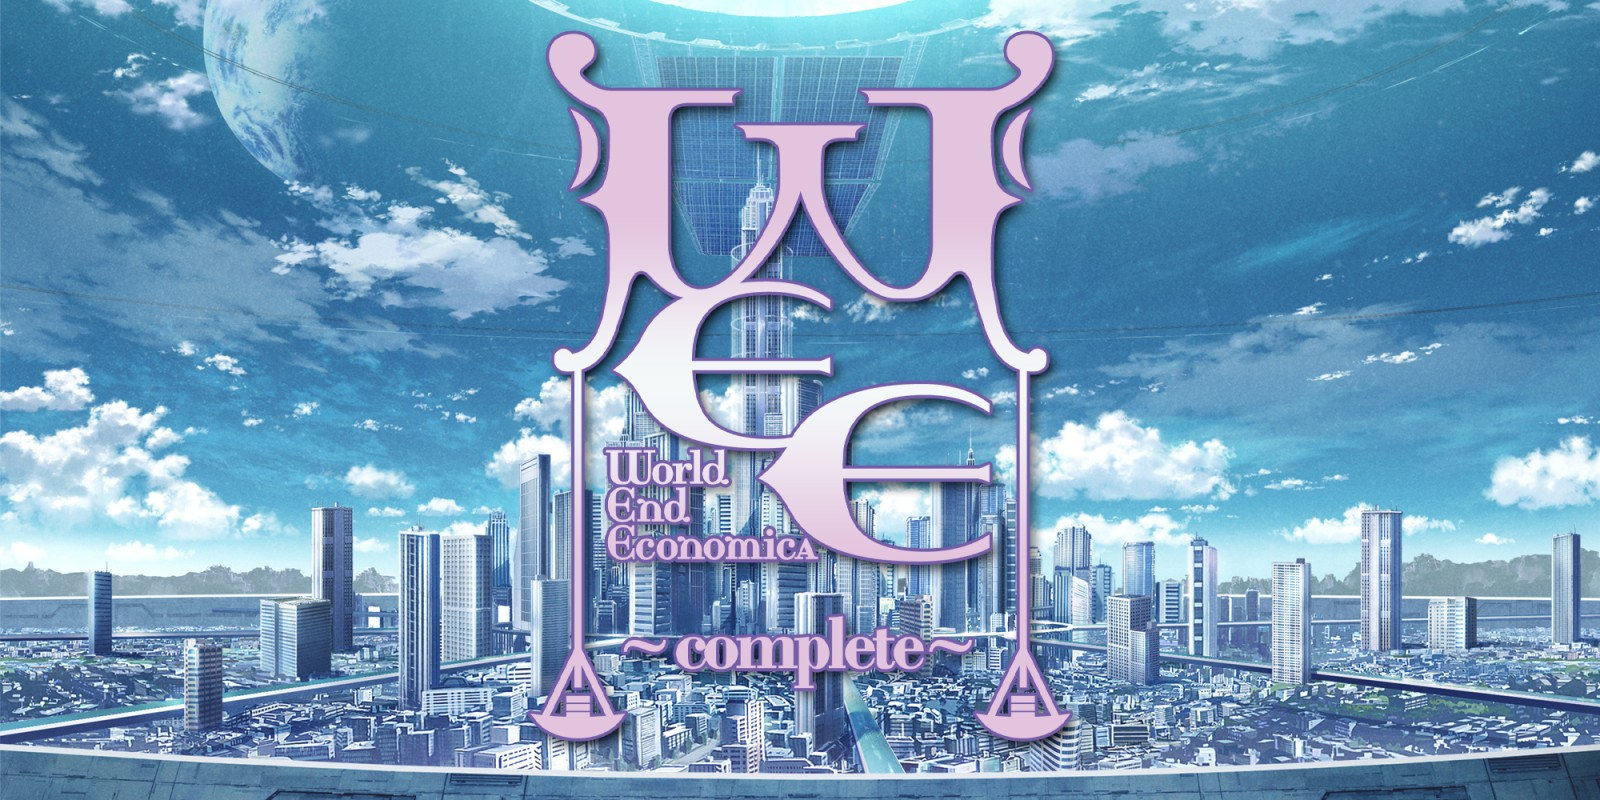 WORLD END ECONOMiCA ~complete~